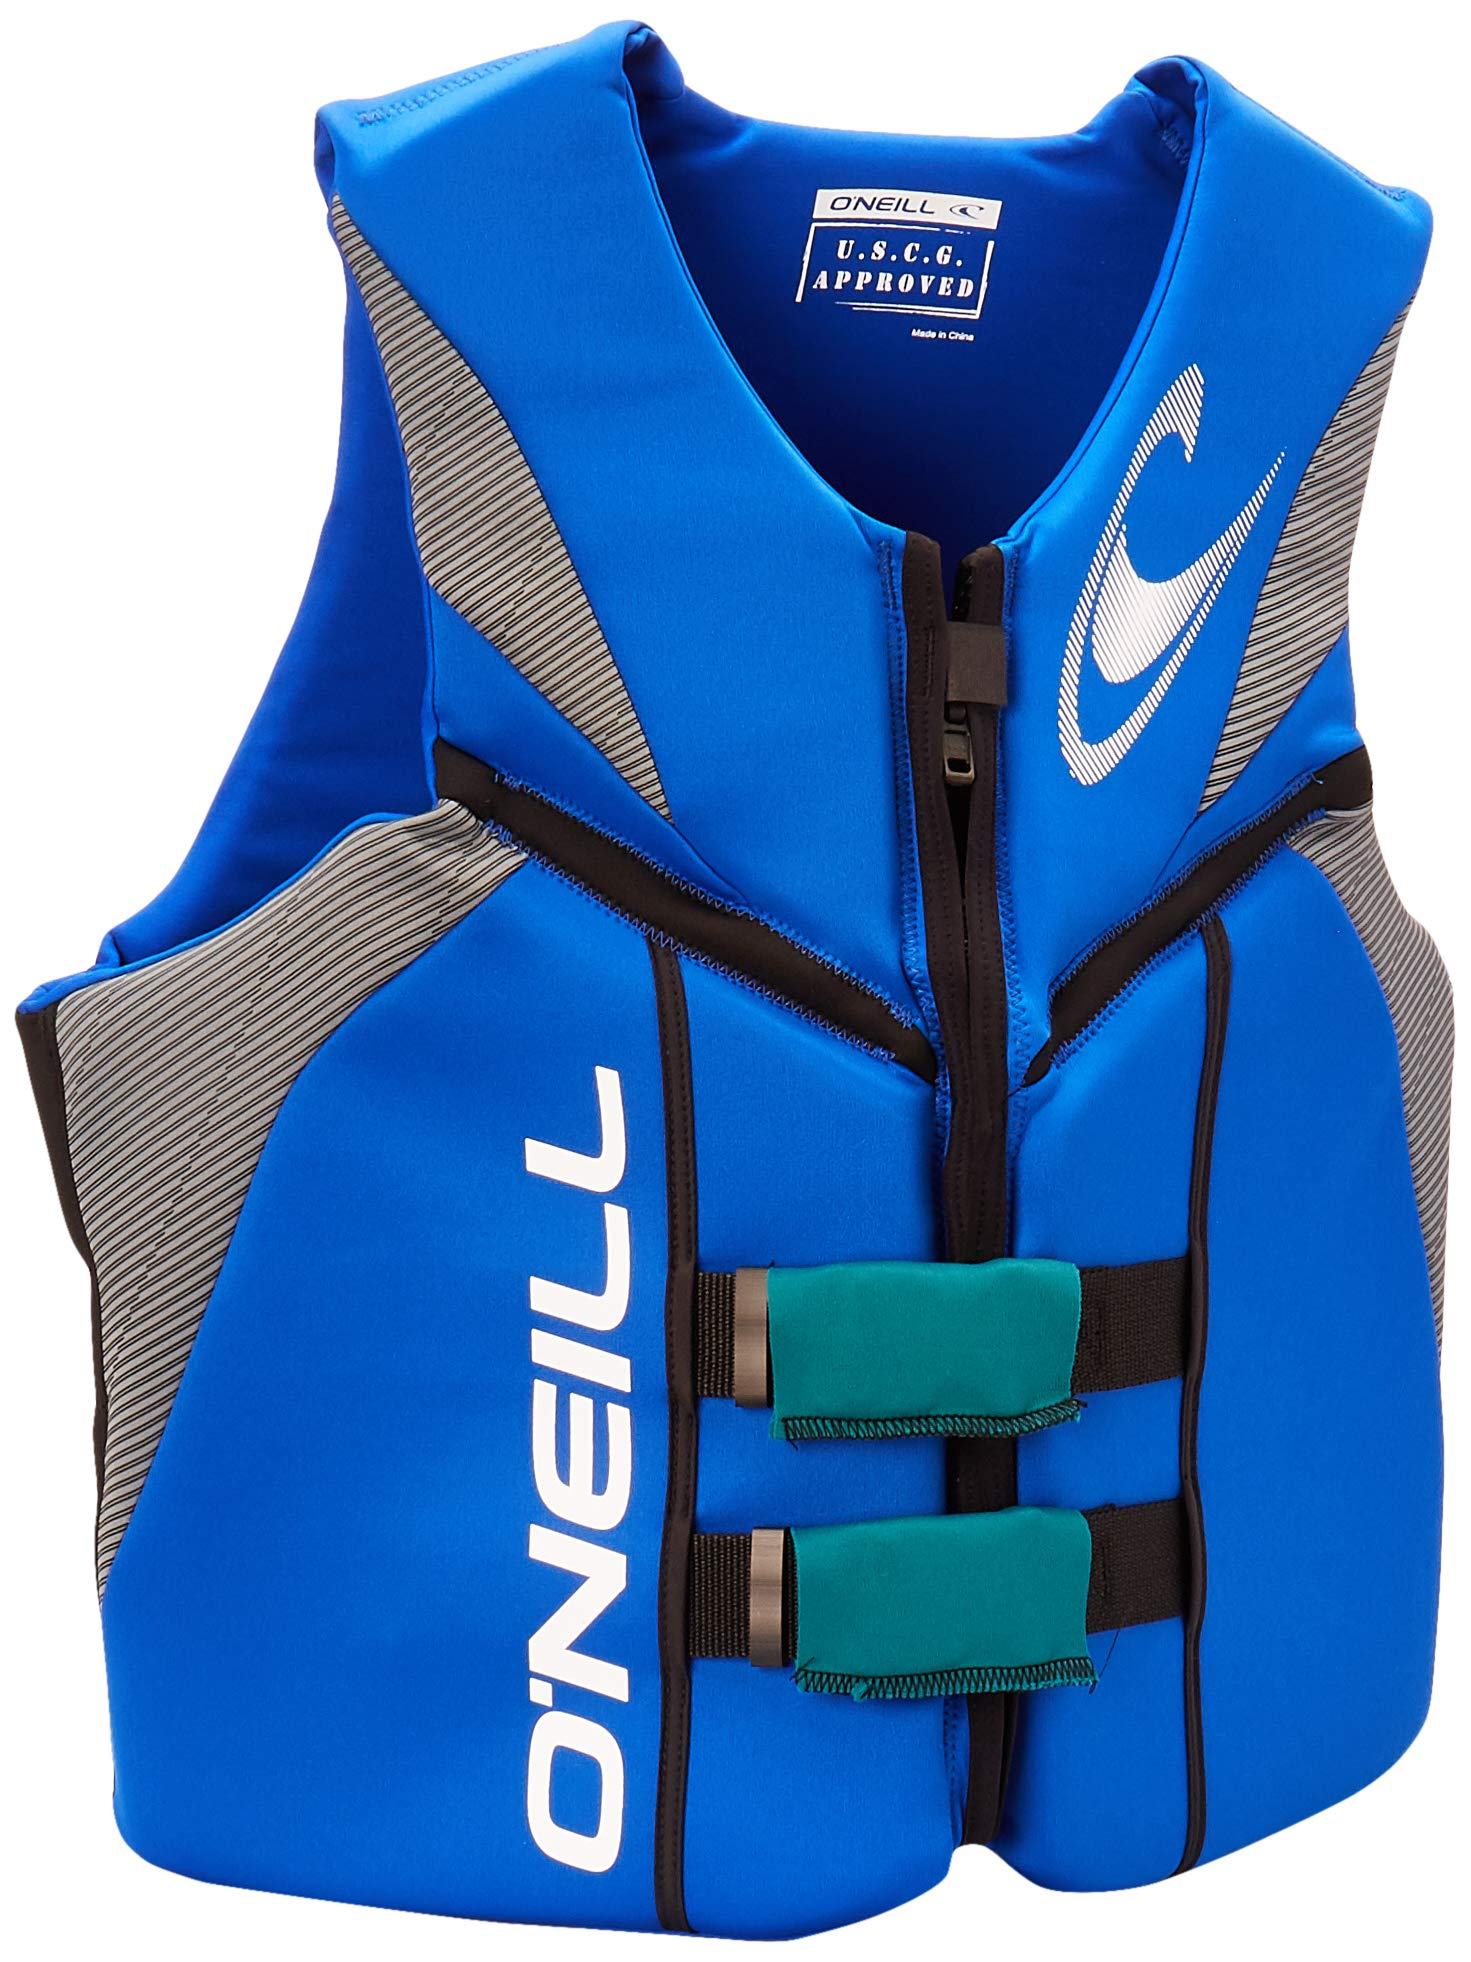 O'Neill Wetsuits  Men's Reactor USCG Life Vest,Pacific/Lunar/Black,X-Large by O'Neill Wetsuits